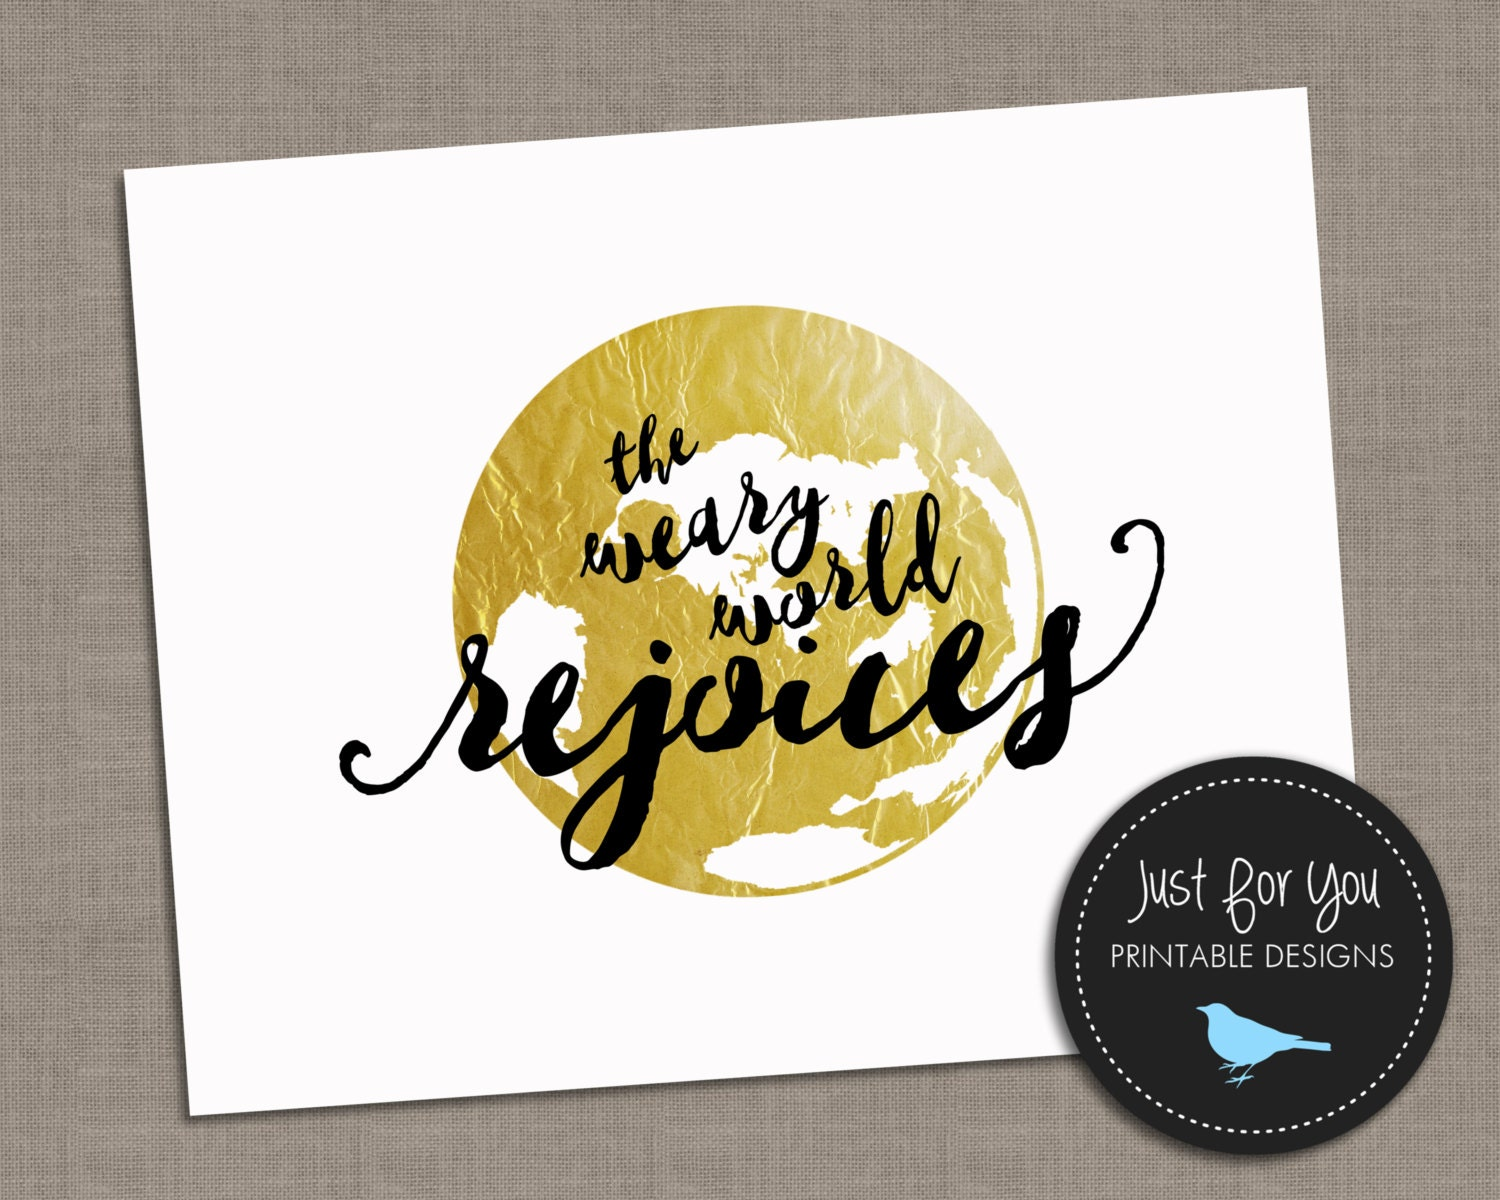 Christmas Printable Wall Art - The Weary World Rejoices - Holiday ...